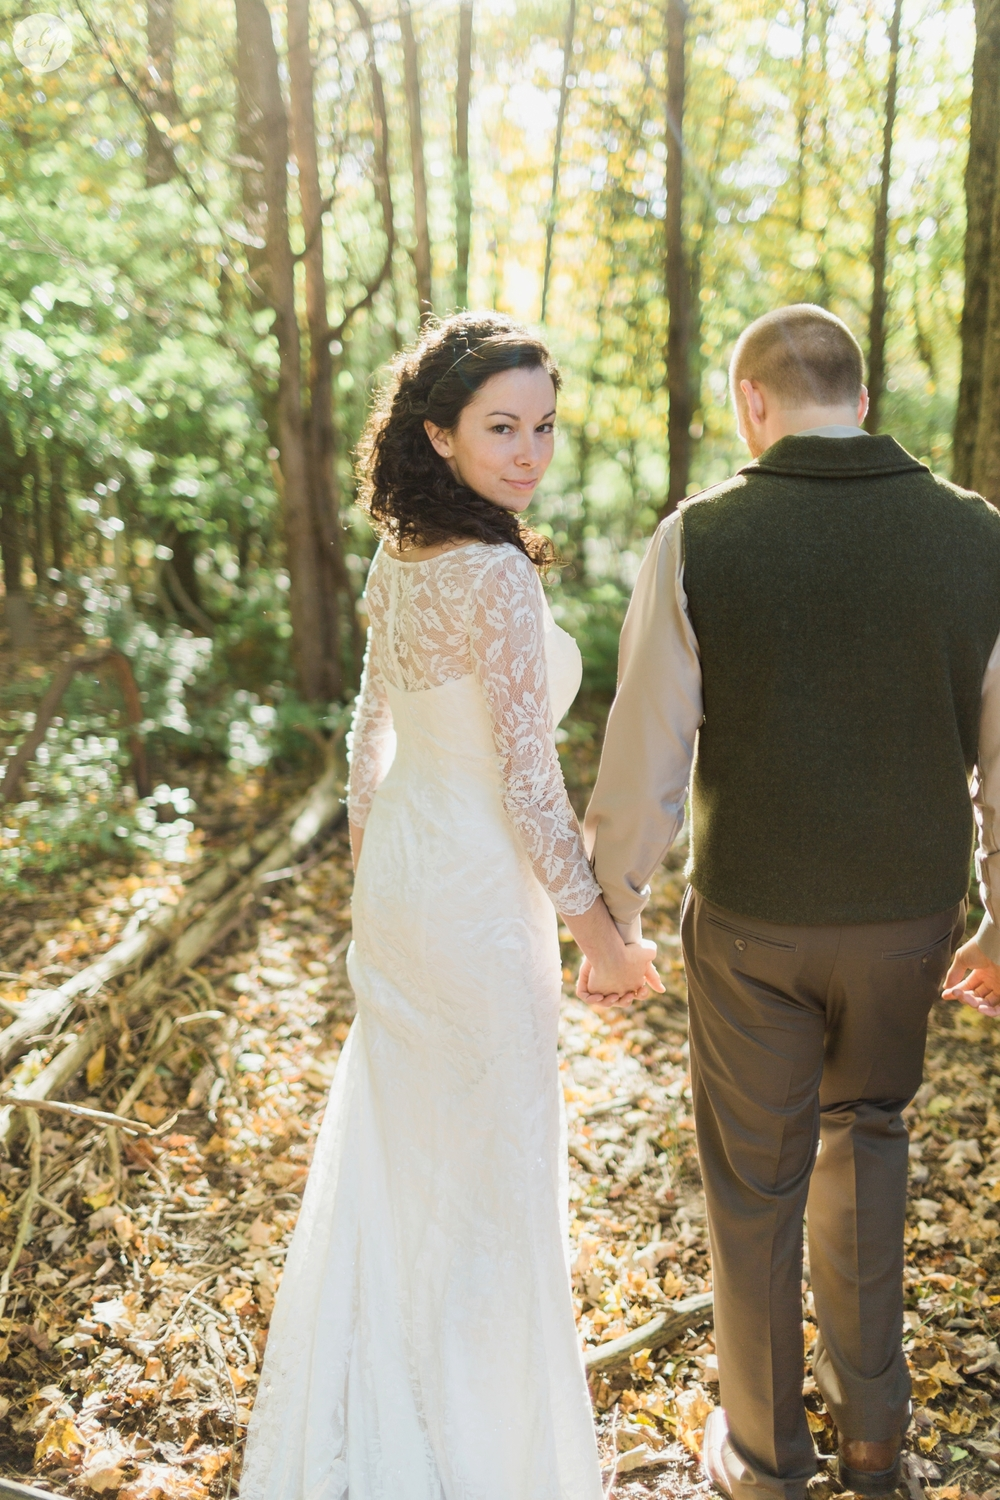 Outdoor-Wedding-in-the-Woods-Photography_4267.jpg